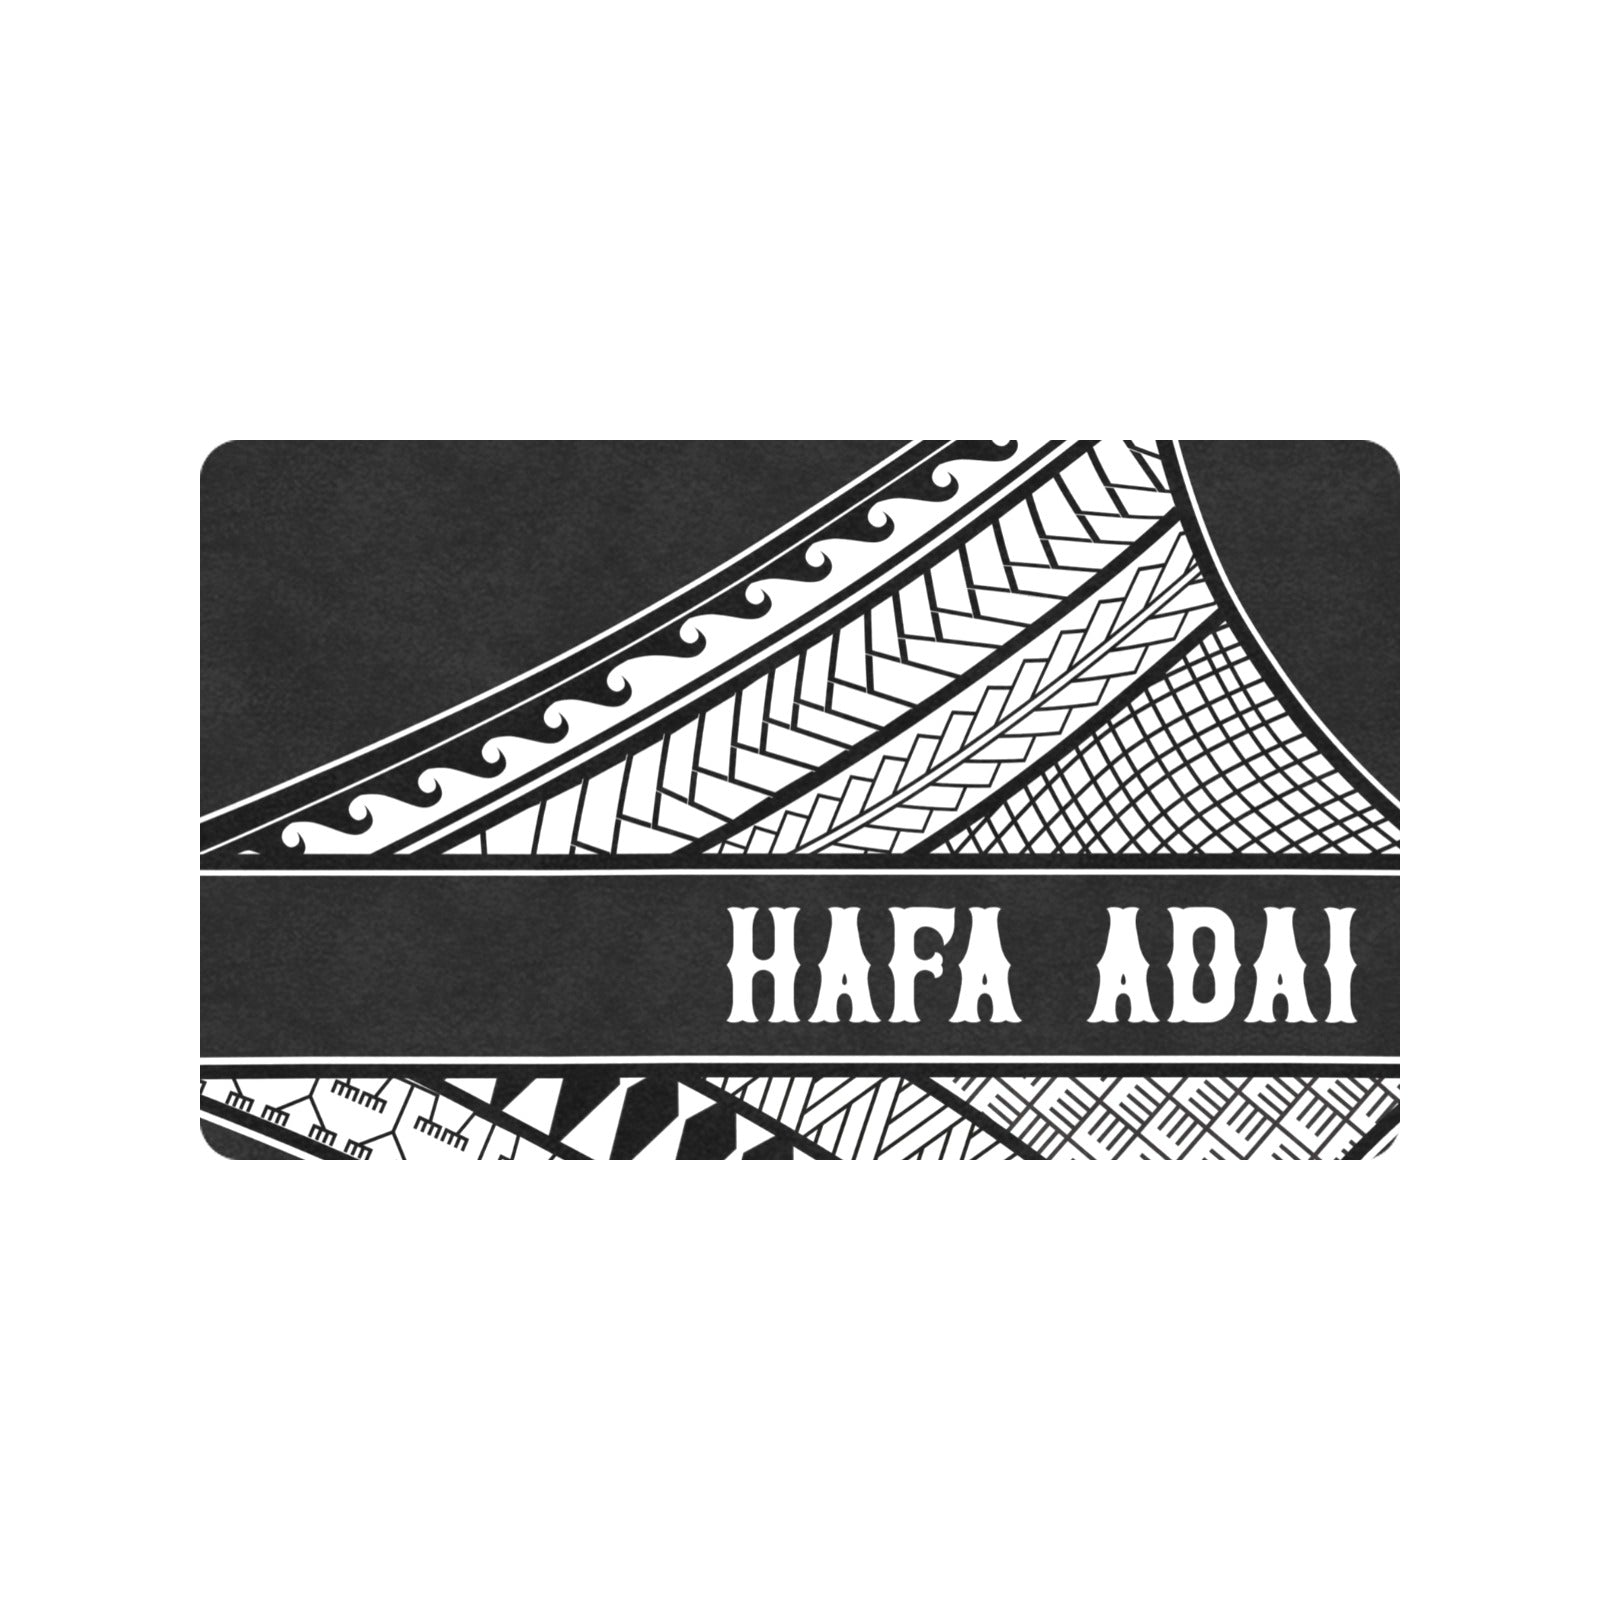 "Hafa Adai Tribal Chamorro CNMI Guam Large Doormat 30""x18"""